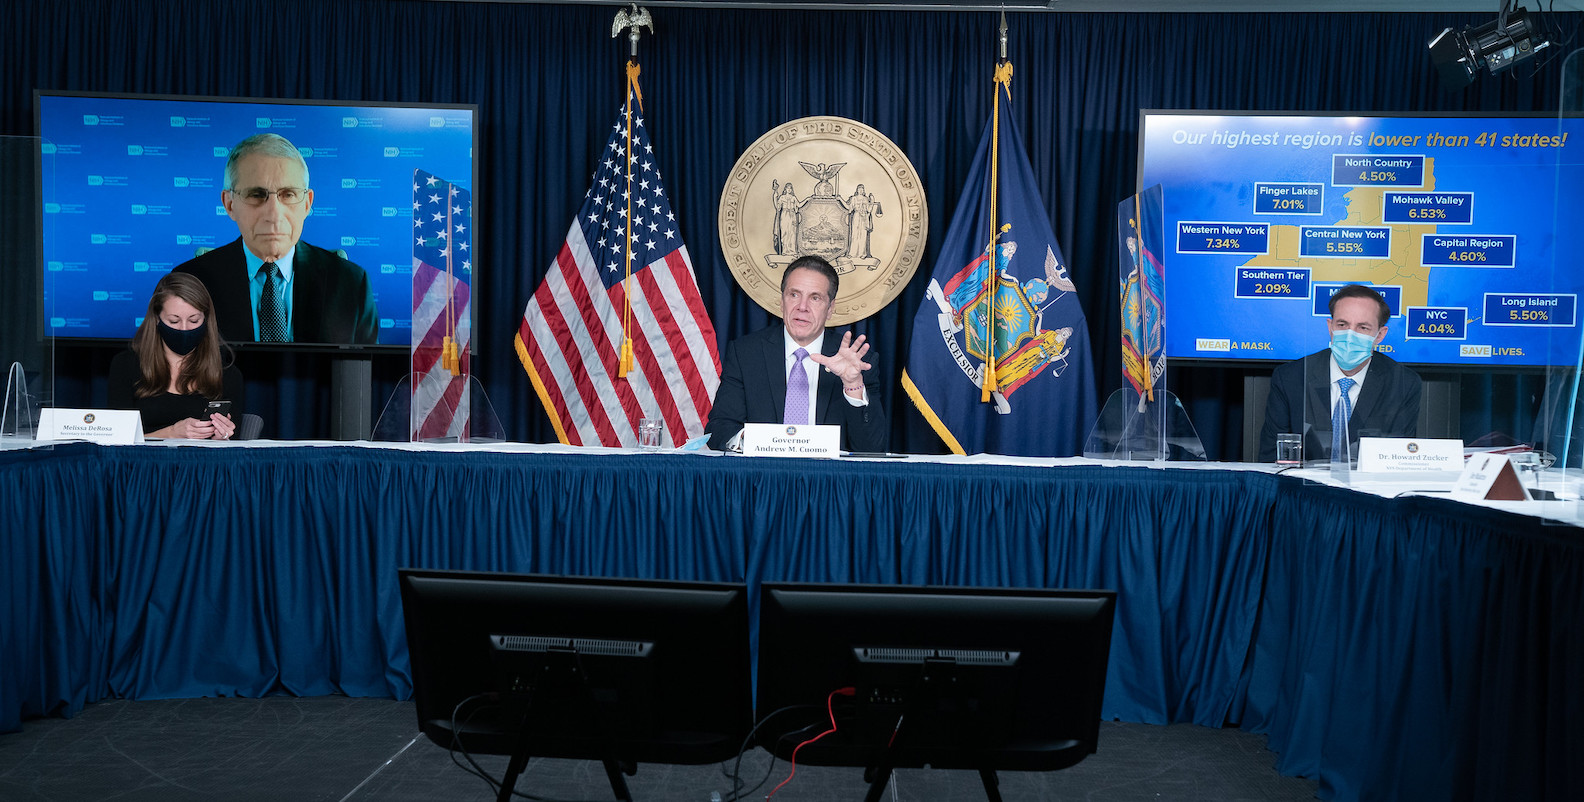 At a press conference Monday morning, Gov. Andrew Cuomo and National Institute of Allergy and Infectious Diseases Director Dr. Anthony Fauci updated New Yorkers on the coronavirus spread. (Images courtesy of the Office of Gov. Andrew M. Cuomo)